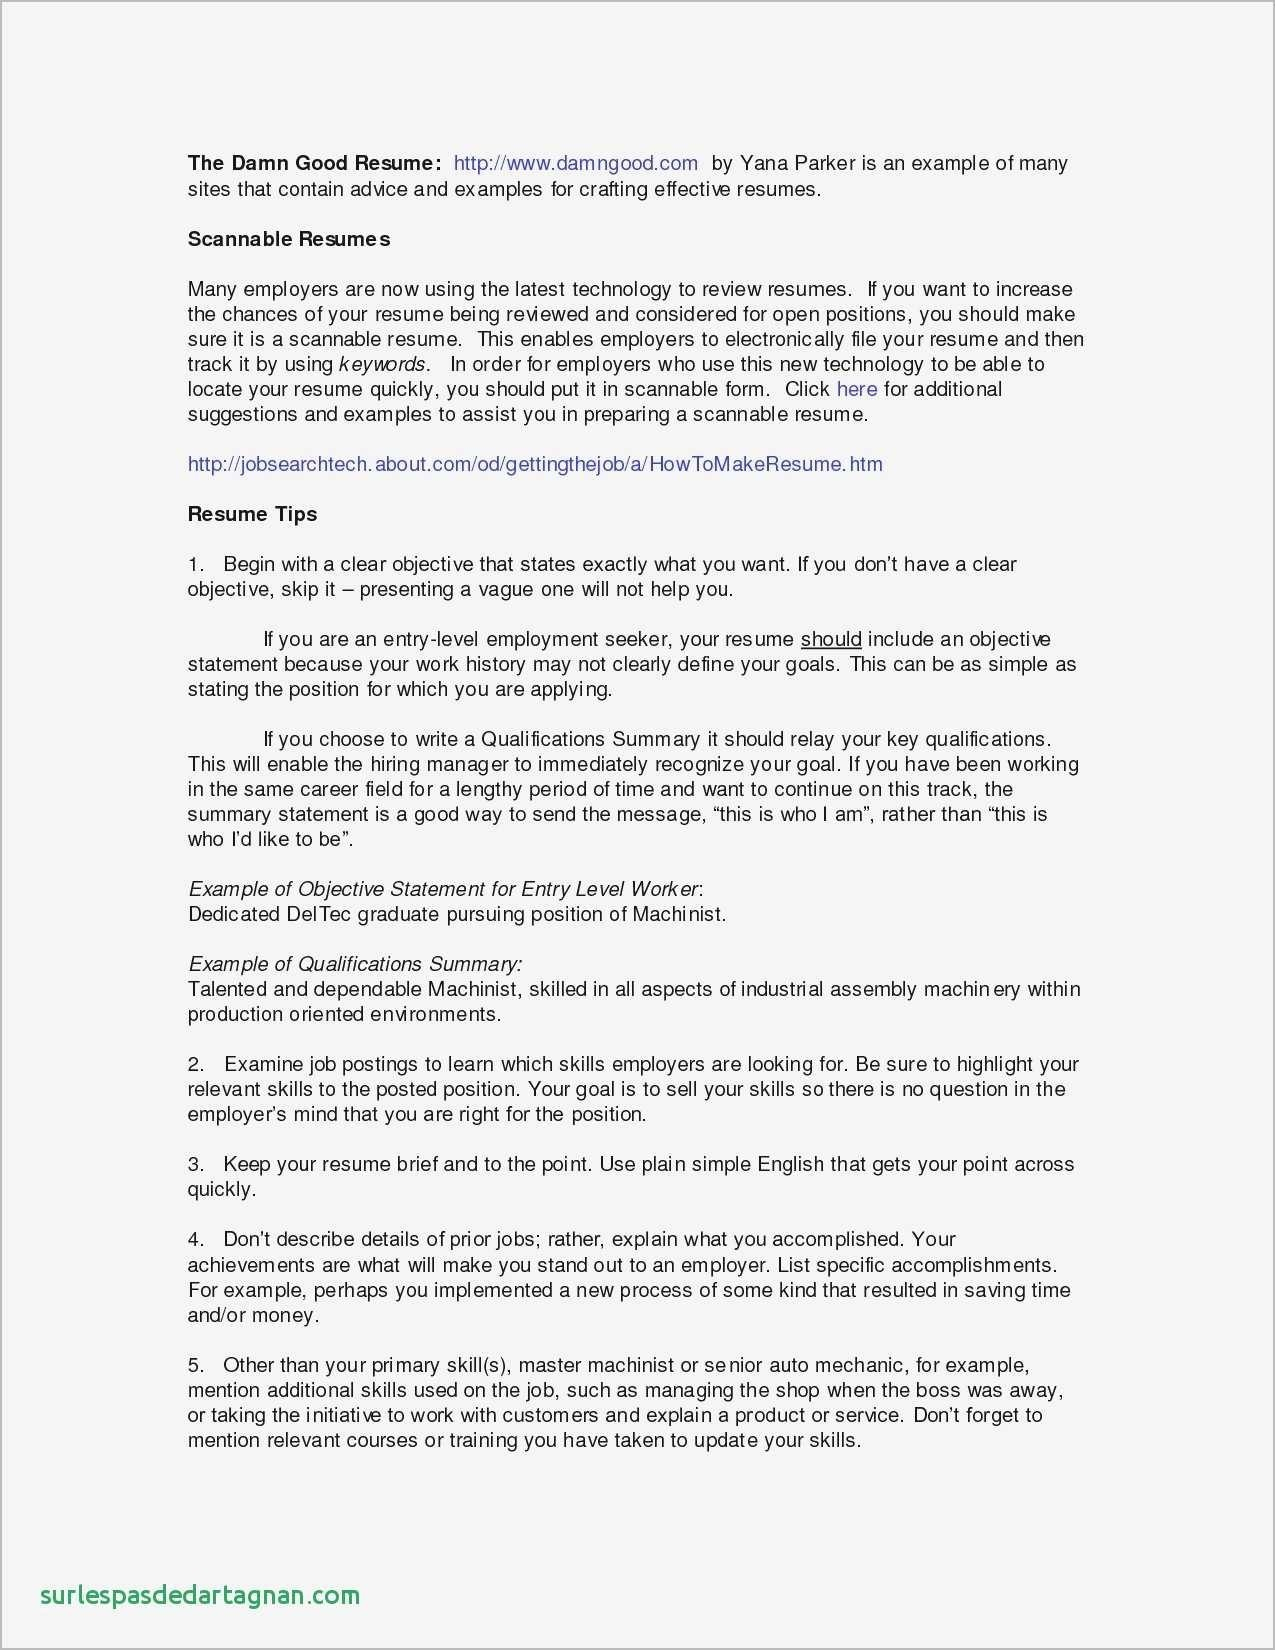 resume writing companies example-Resume Writing panies 17 Resume Writing panies 13-a